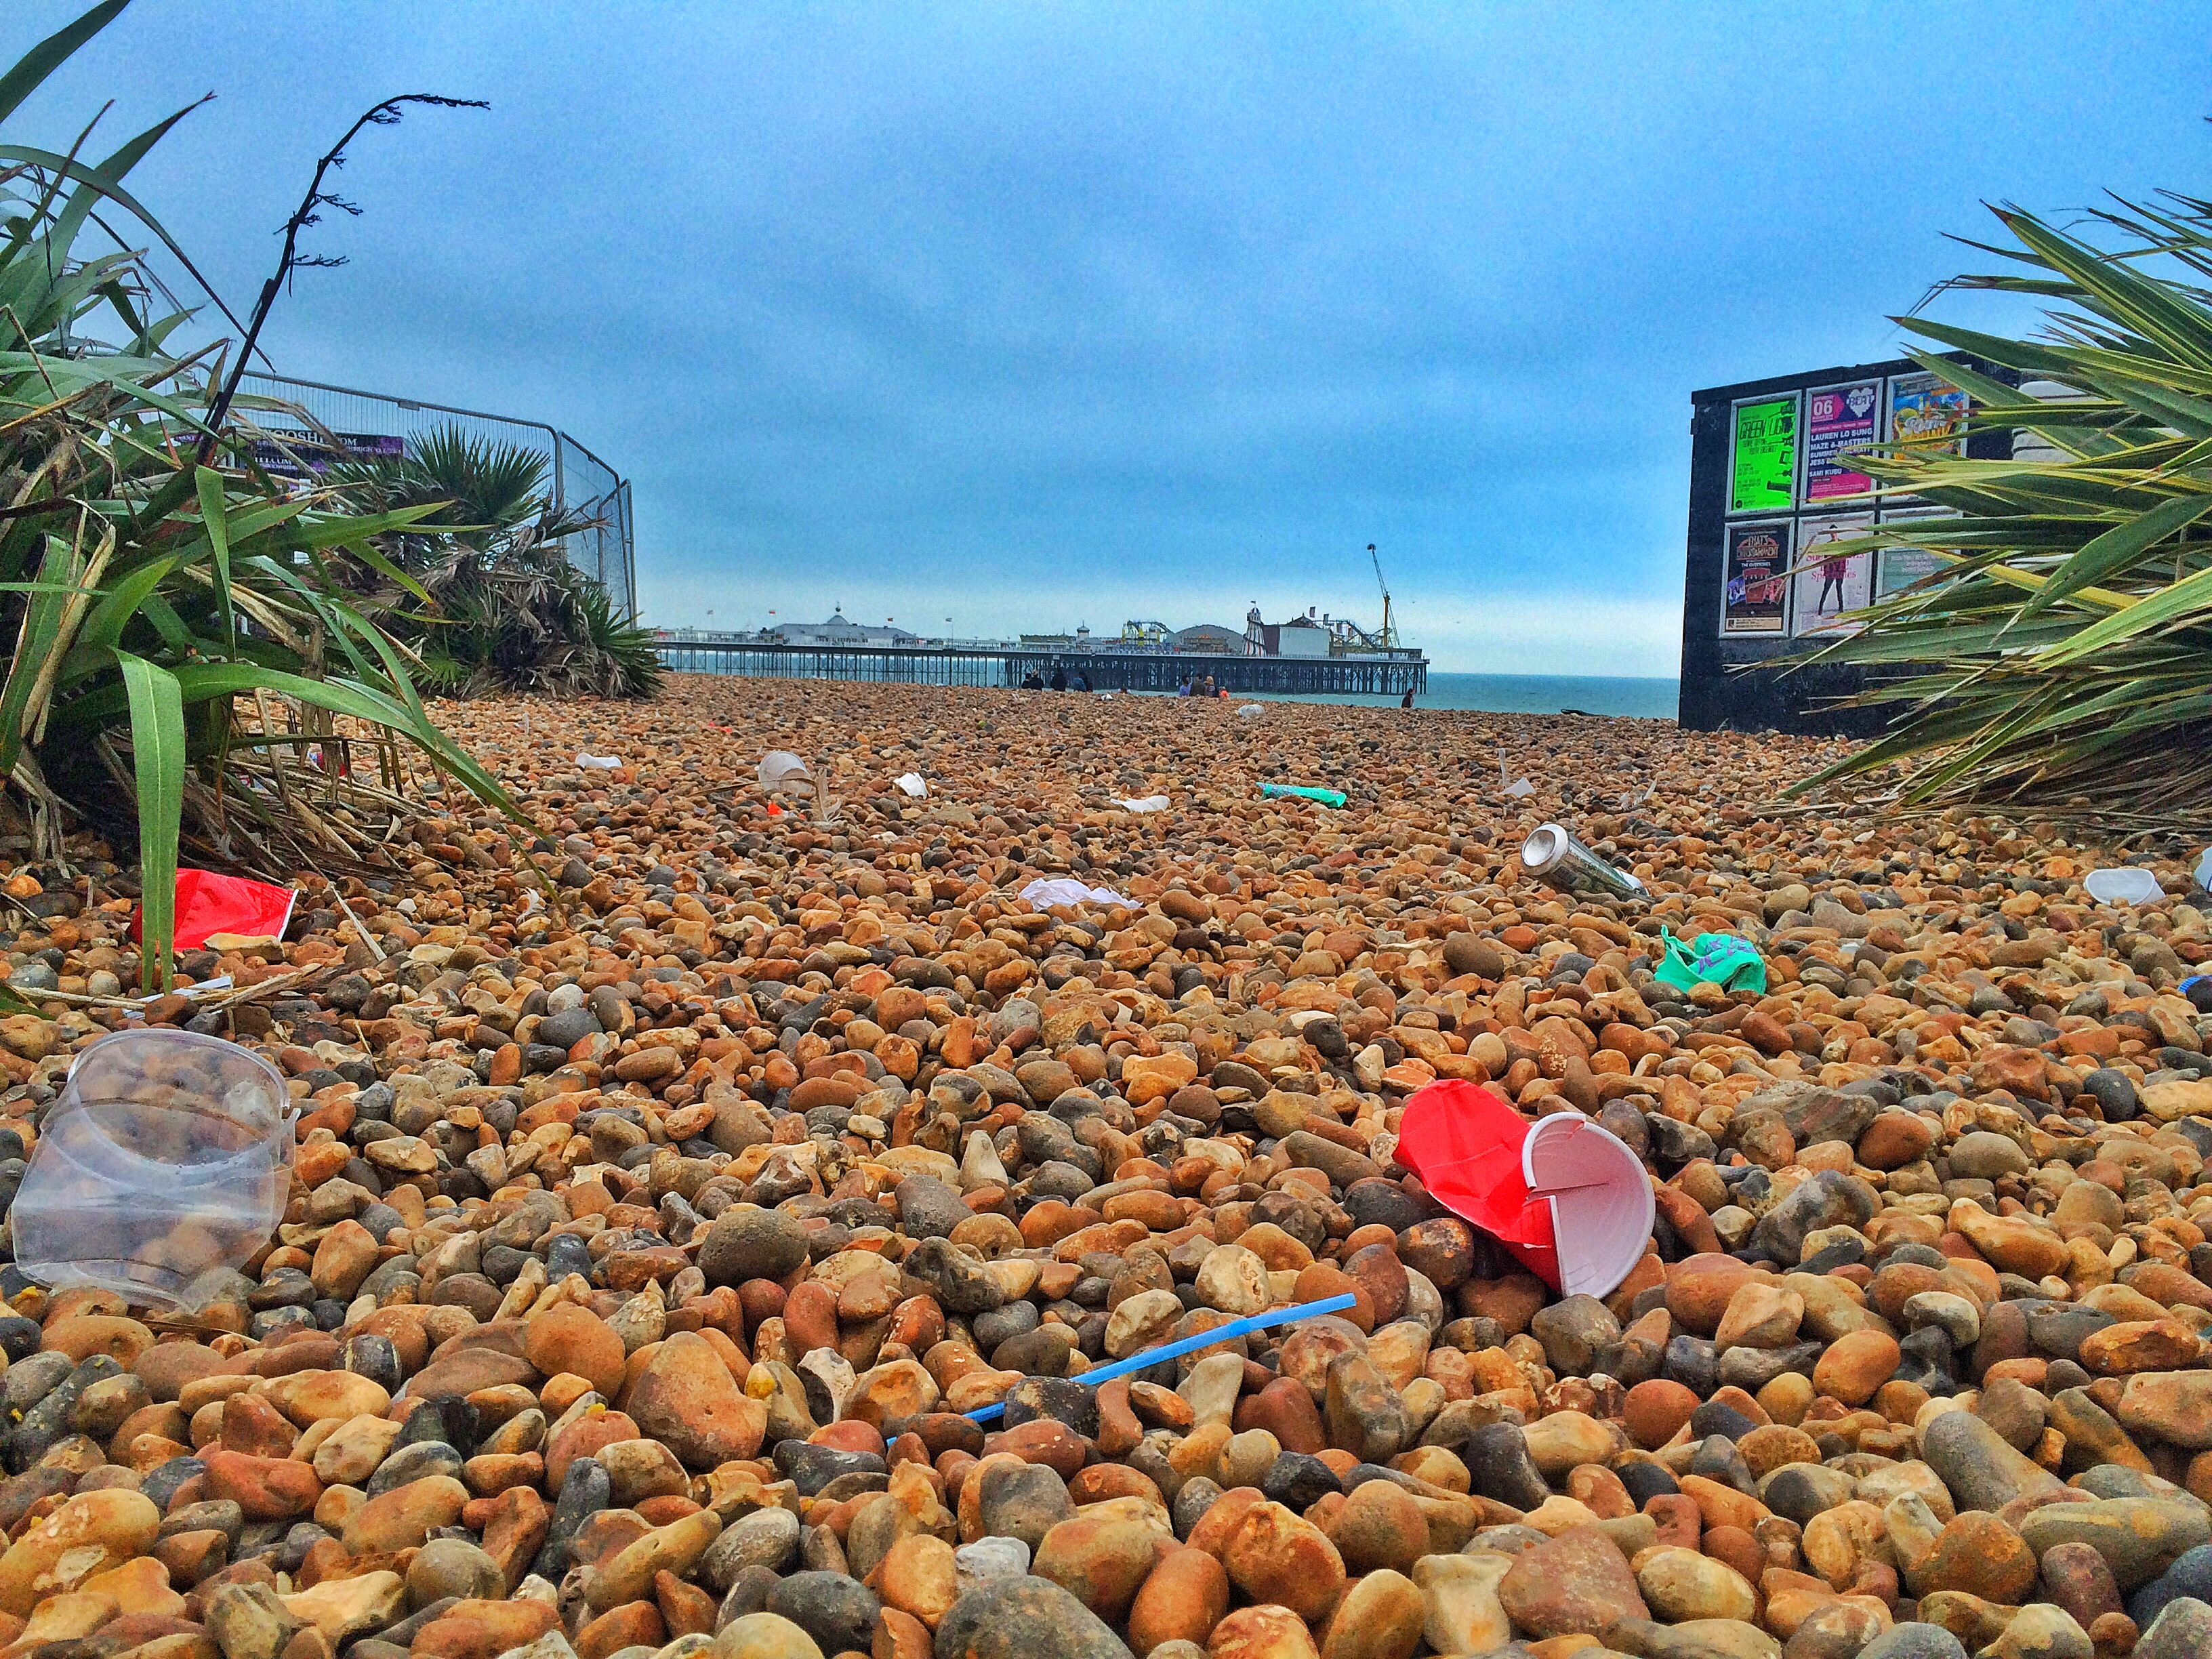 BRIGHTON PRIDE AFTERMATH 2016 - LITTER ON BEACH BY PIER